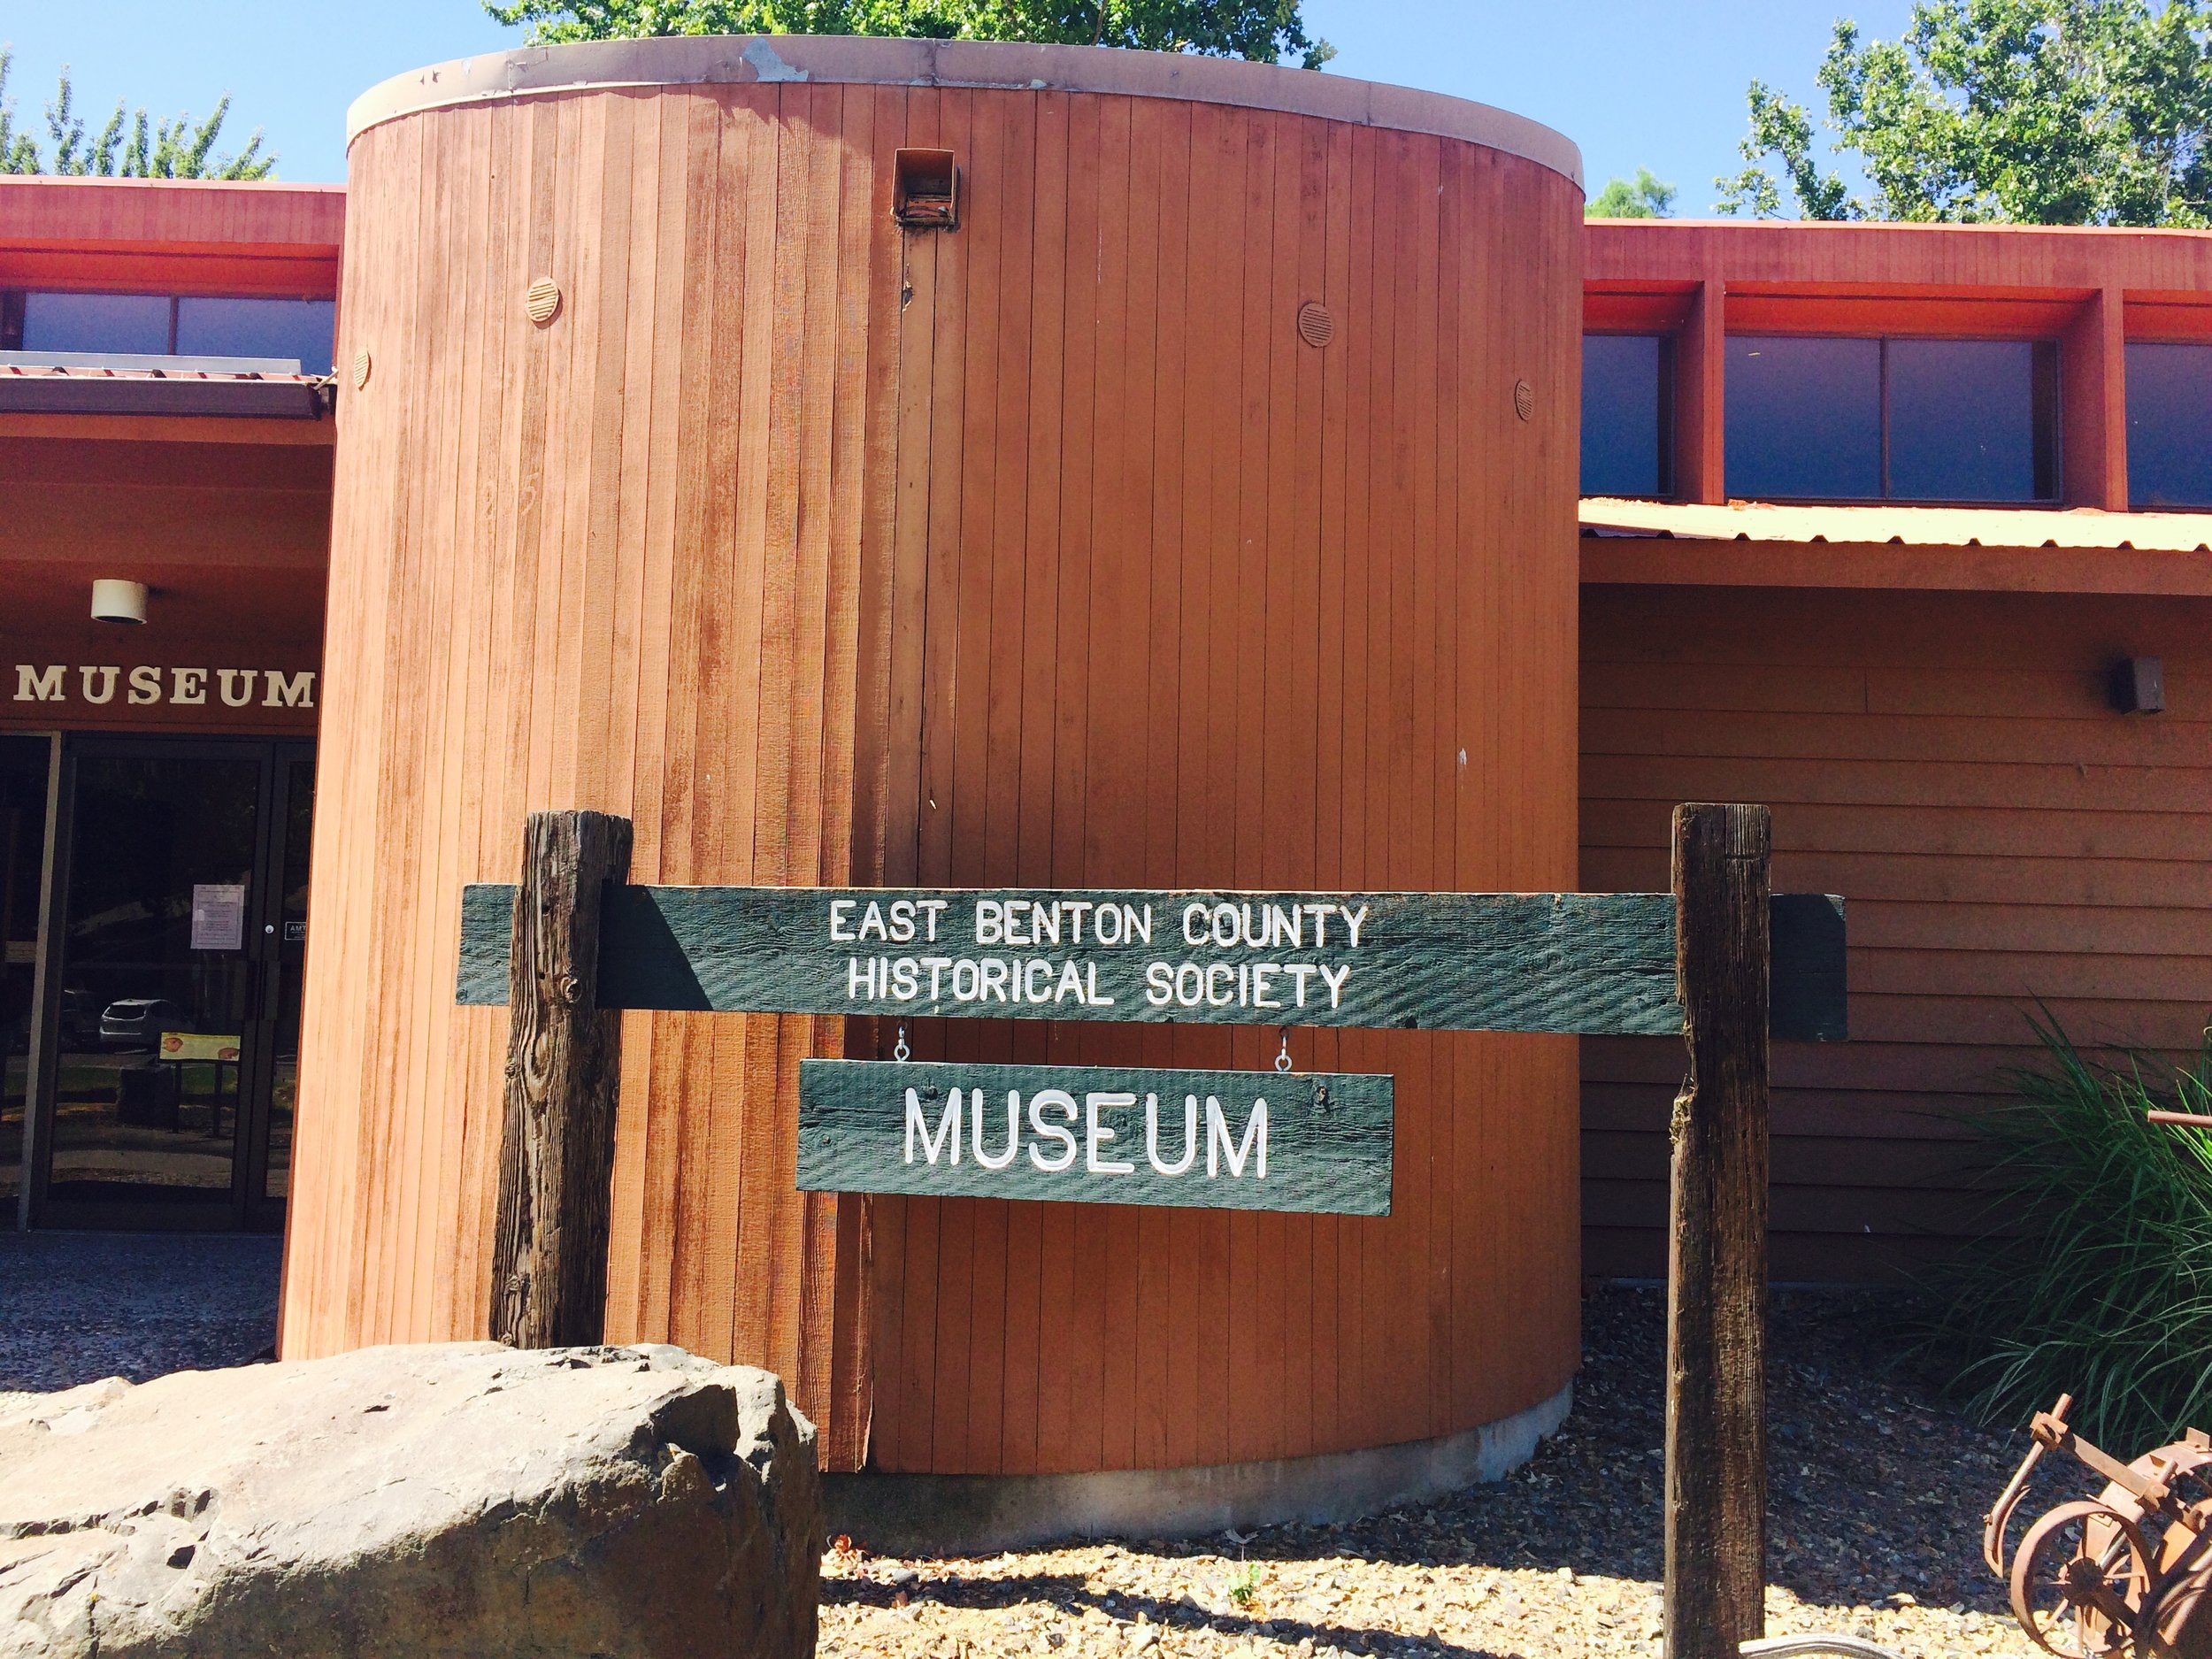 Visit - Come by for a visit and see all that the museum has to offer. You can participate by becoming a volunteer and by joining the historical society as a member.Find Out How!